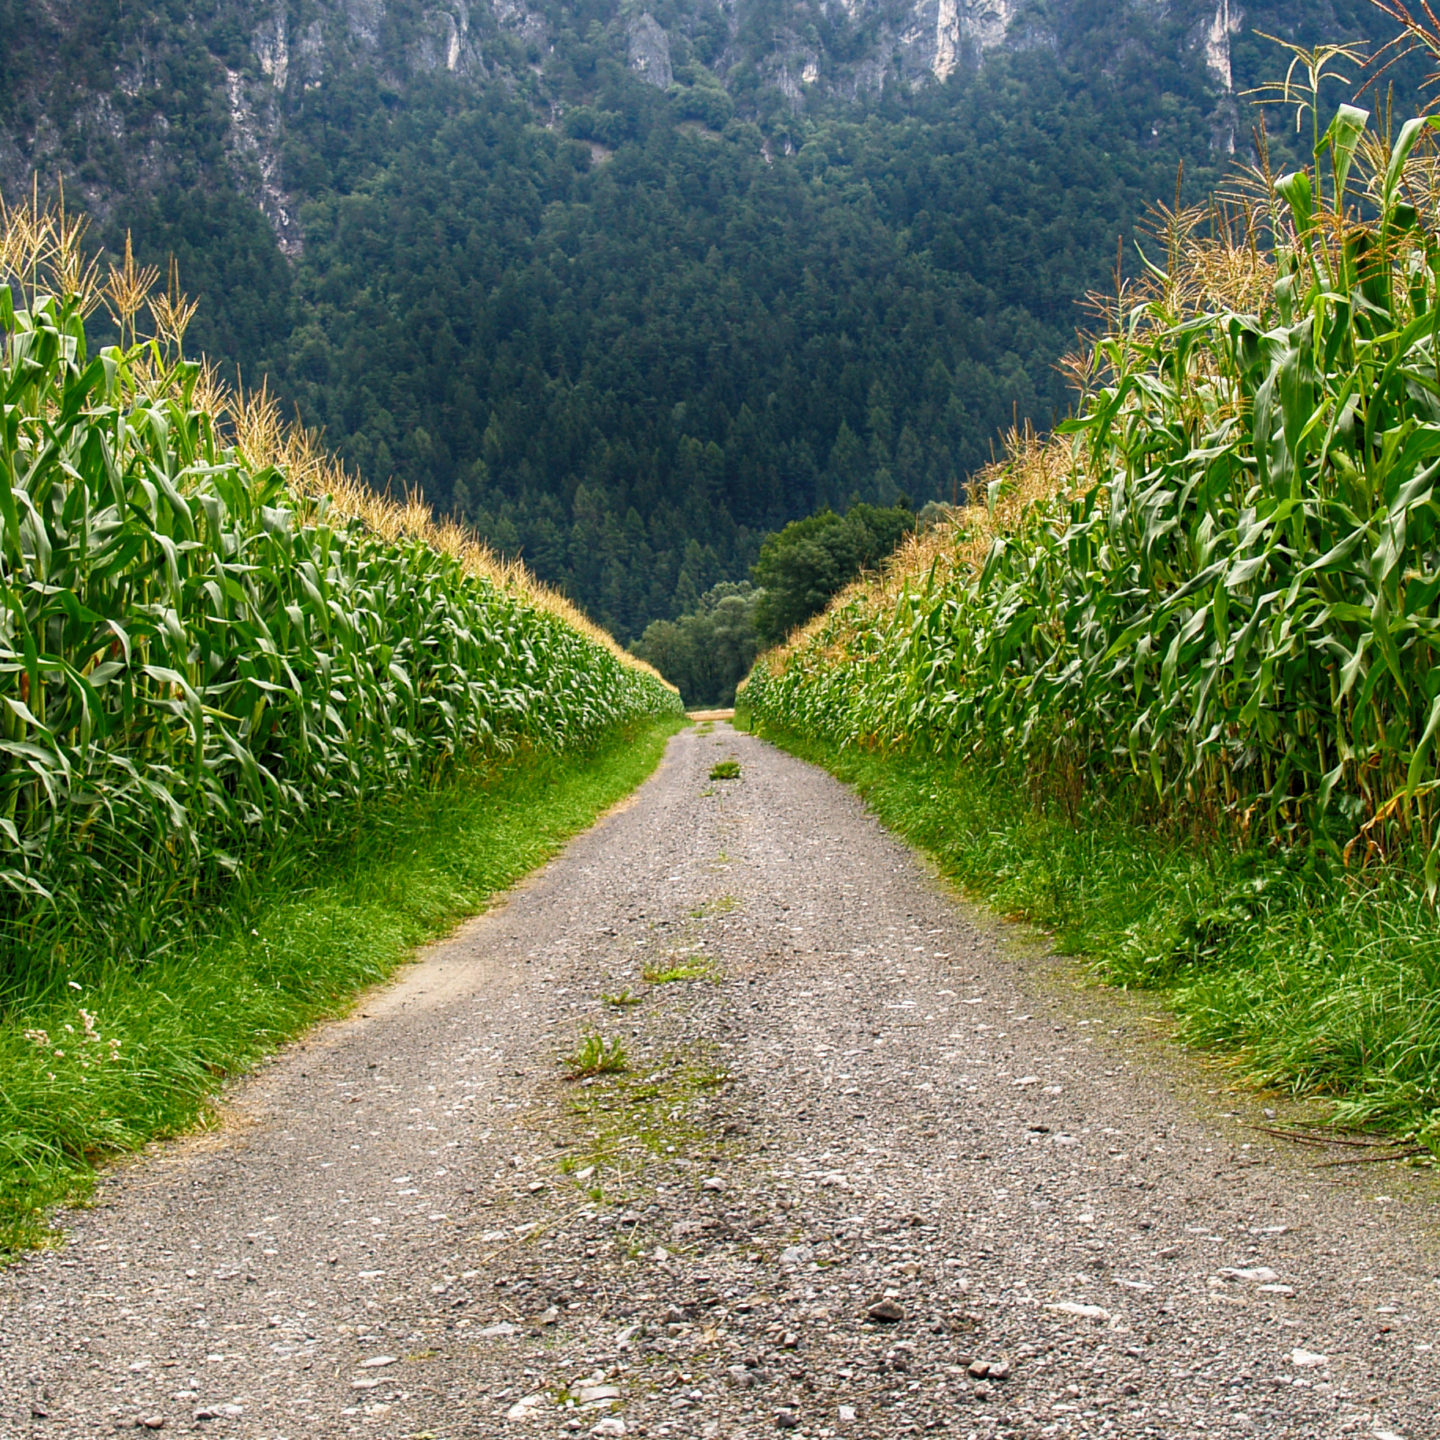 After 21 years of GM maize in the fields all over the world – what the scientists say?